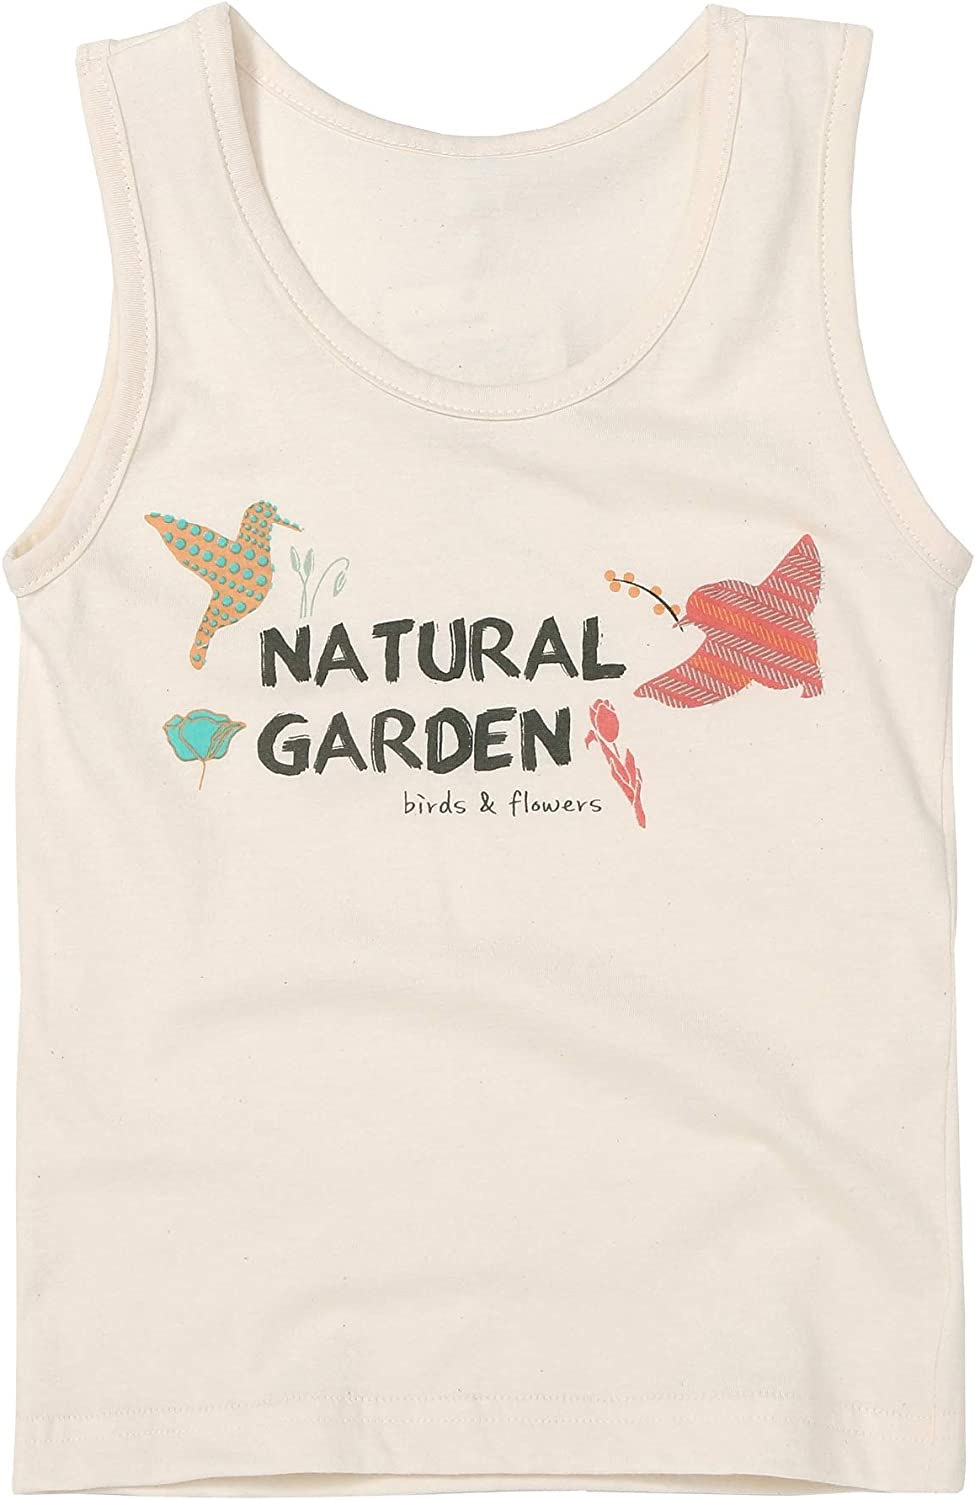 WithOrganic Undershirt Tank Top   100% Organic Cotton   Comfortable, Breathable, Gentle Snug Fit   for Girls and Boys.